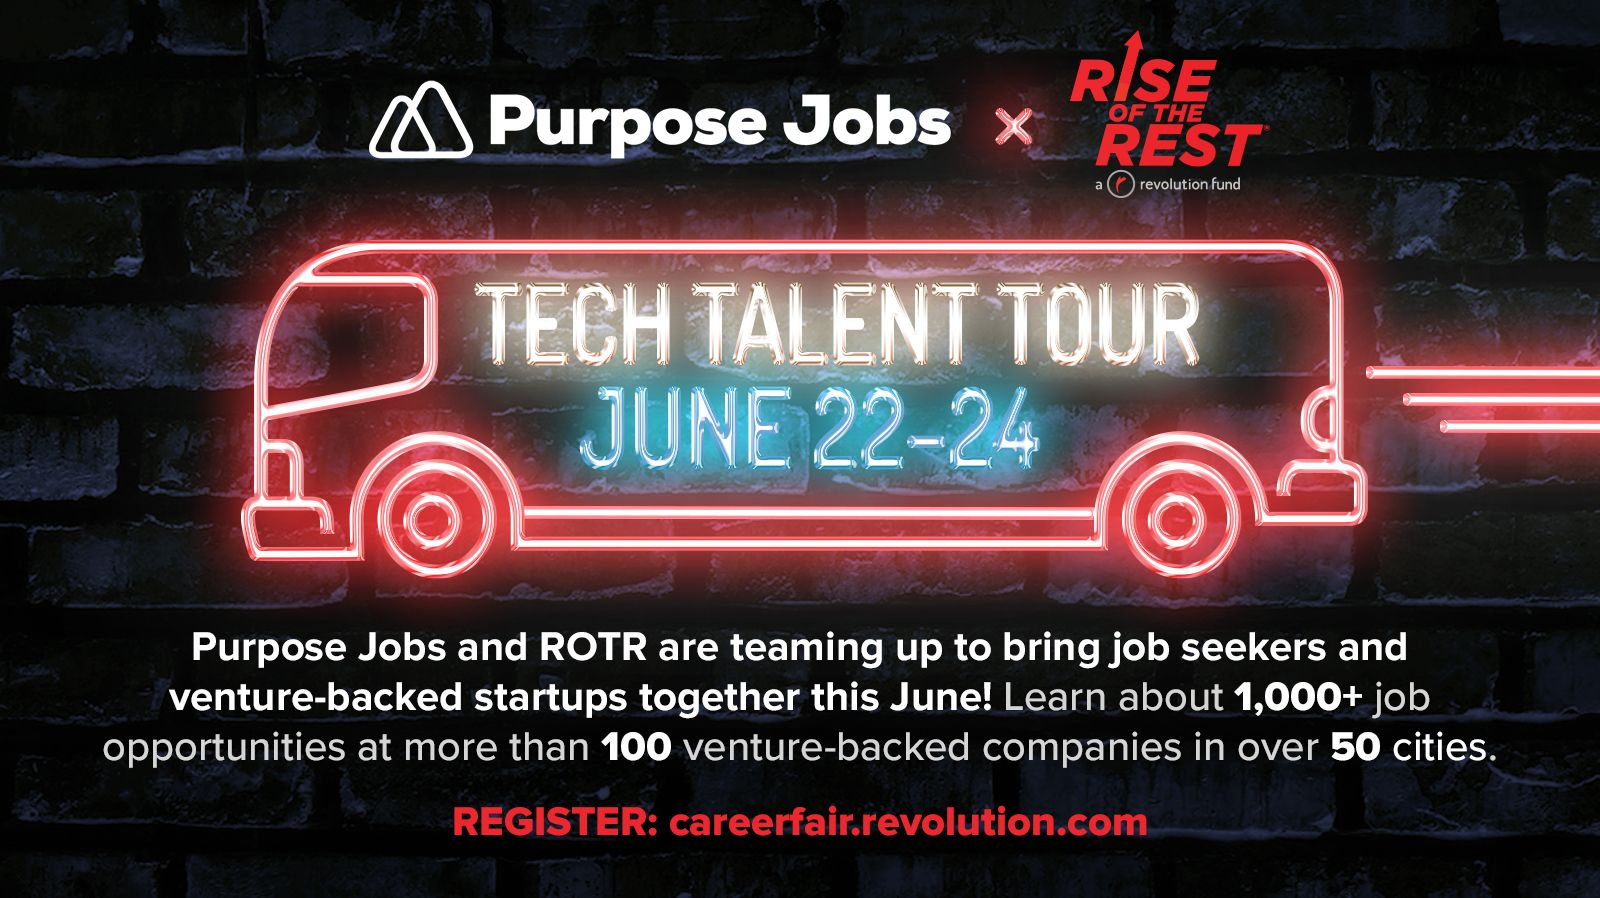 Rise of the Rest celebrates growth in emerging tech hubs as people rethink where they live & work